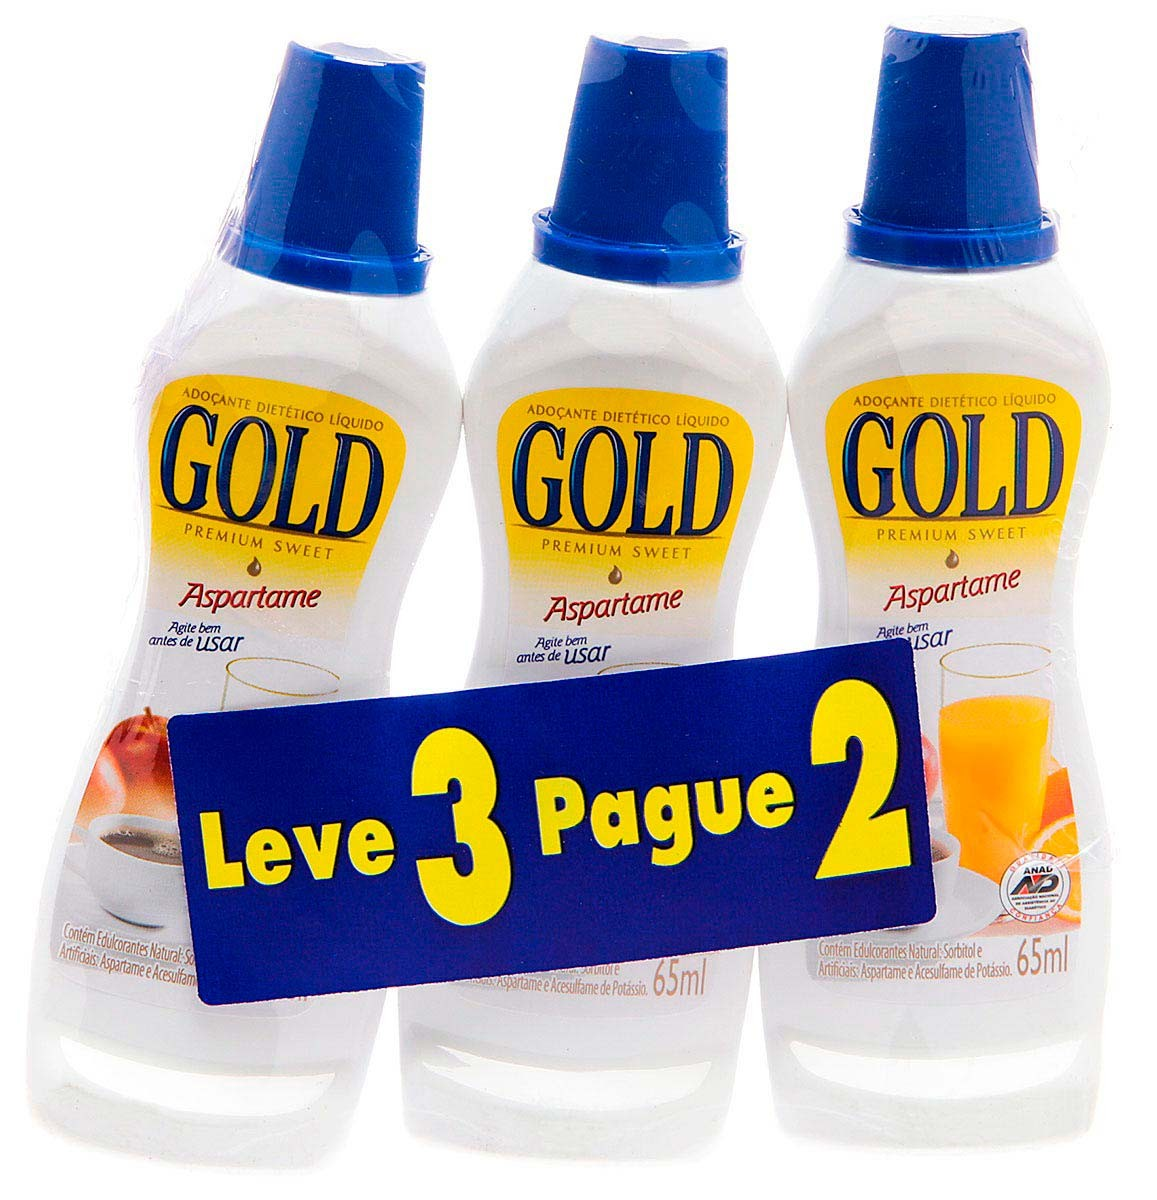 Gold Adocante Aspartame Com 65 Ml Kit Promocional Leve 3 Unidades Pague 2